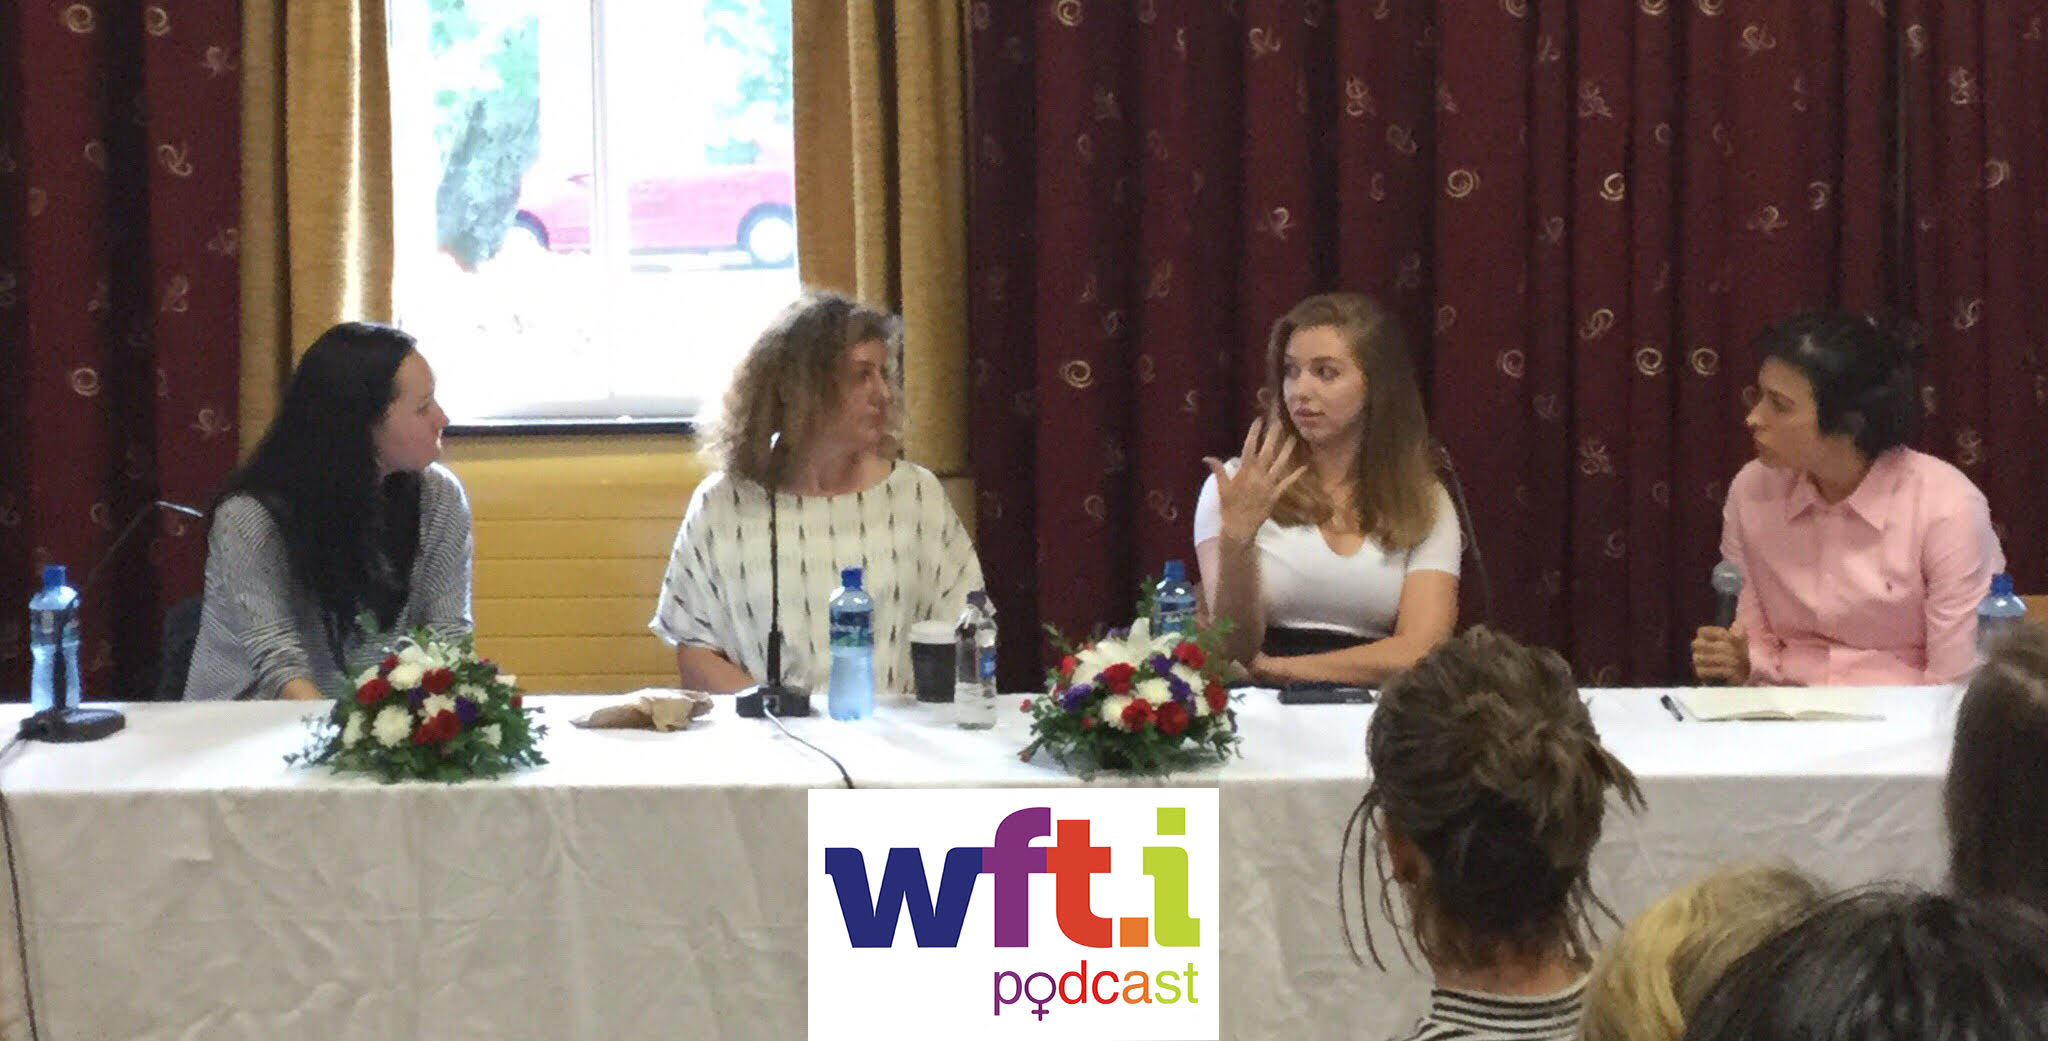 WFT Podcast